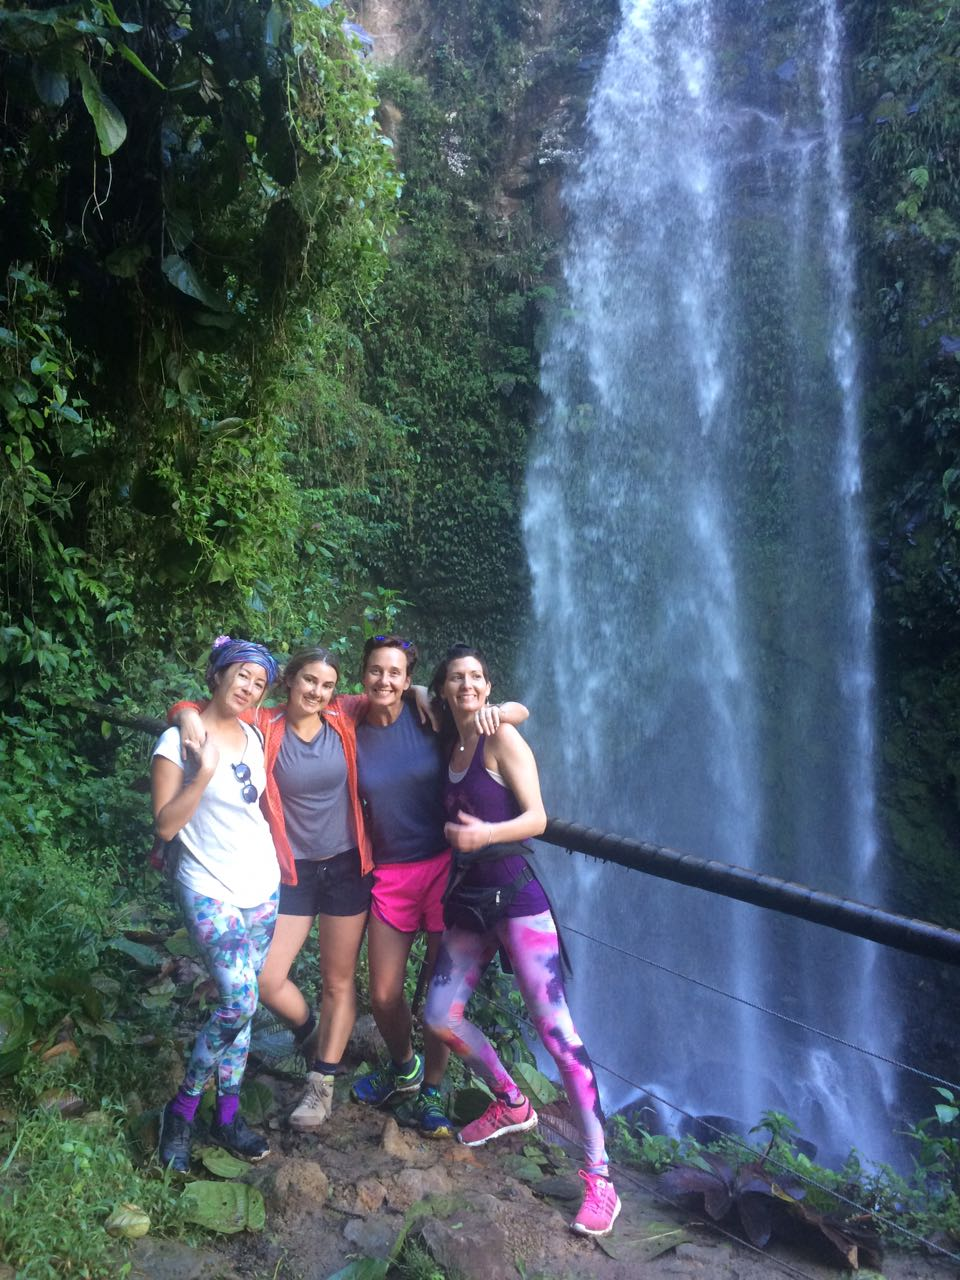 Waterfall Hike - United we will wonder into nature and connect with Mother Earth. To enjoy her beauty and be filled with her light.